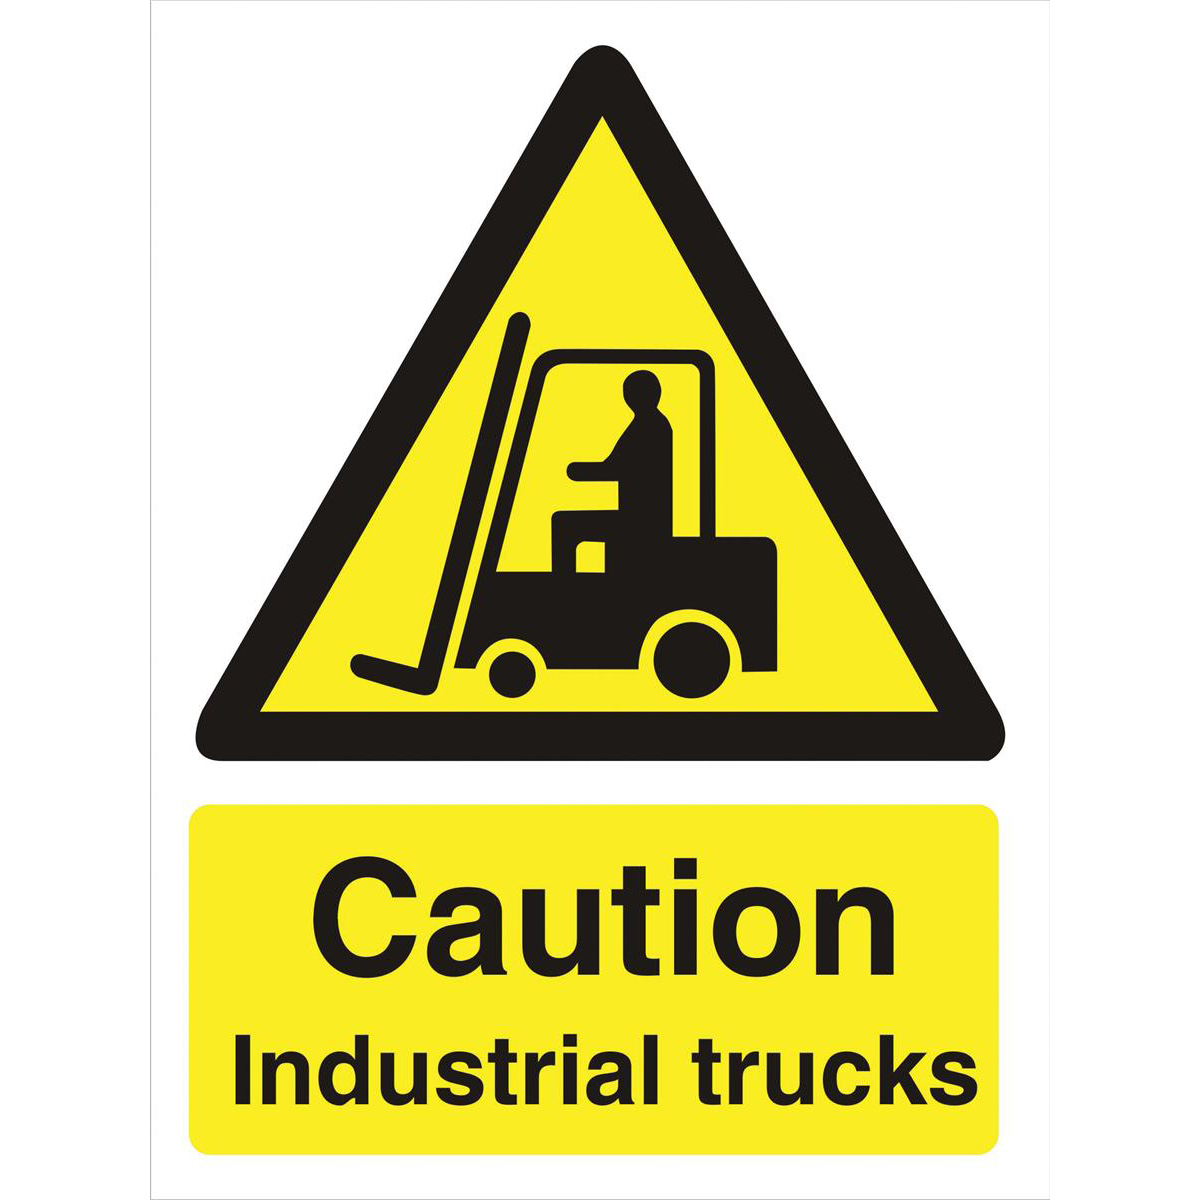 Stewart Superior Caution Industrial Trucks Sign  W150xH200mm Self-adhesive Vinyl Ref WO135SAV